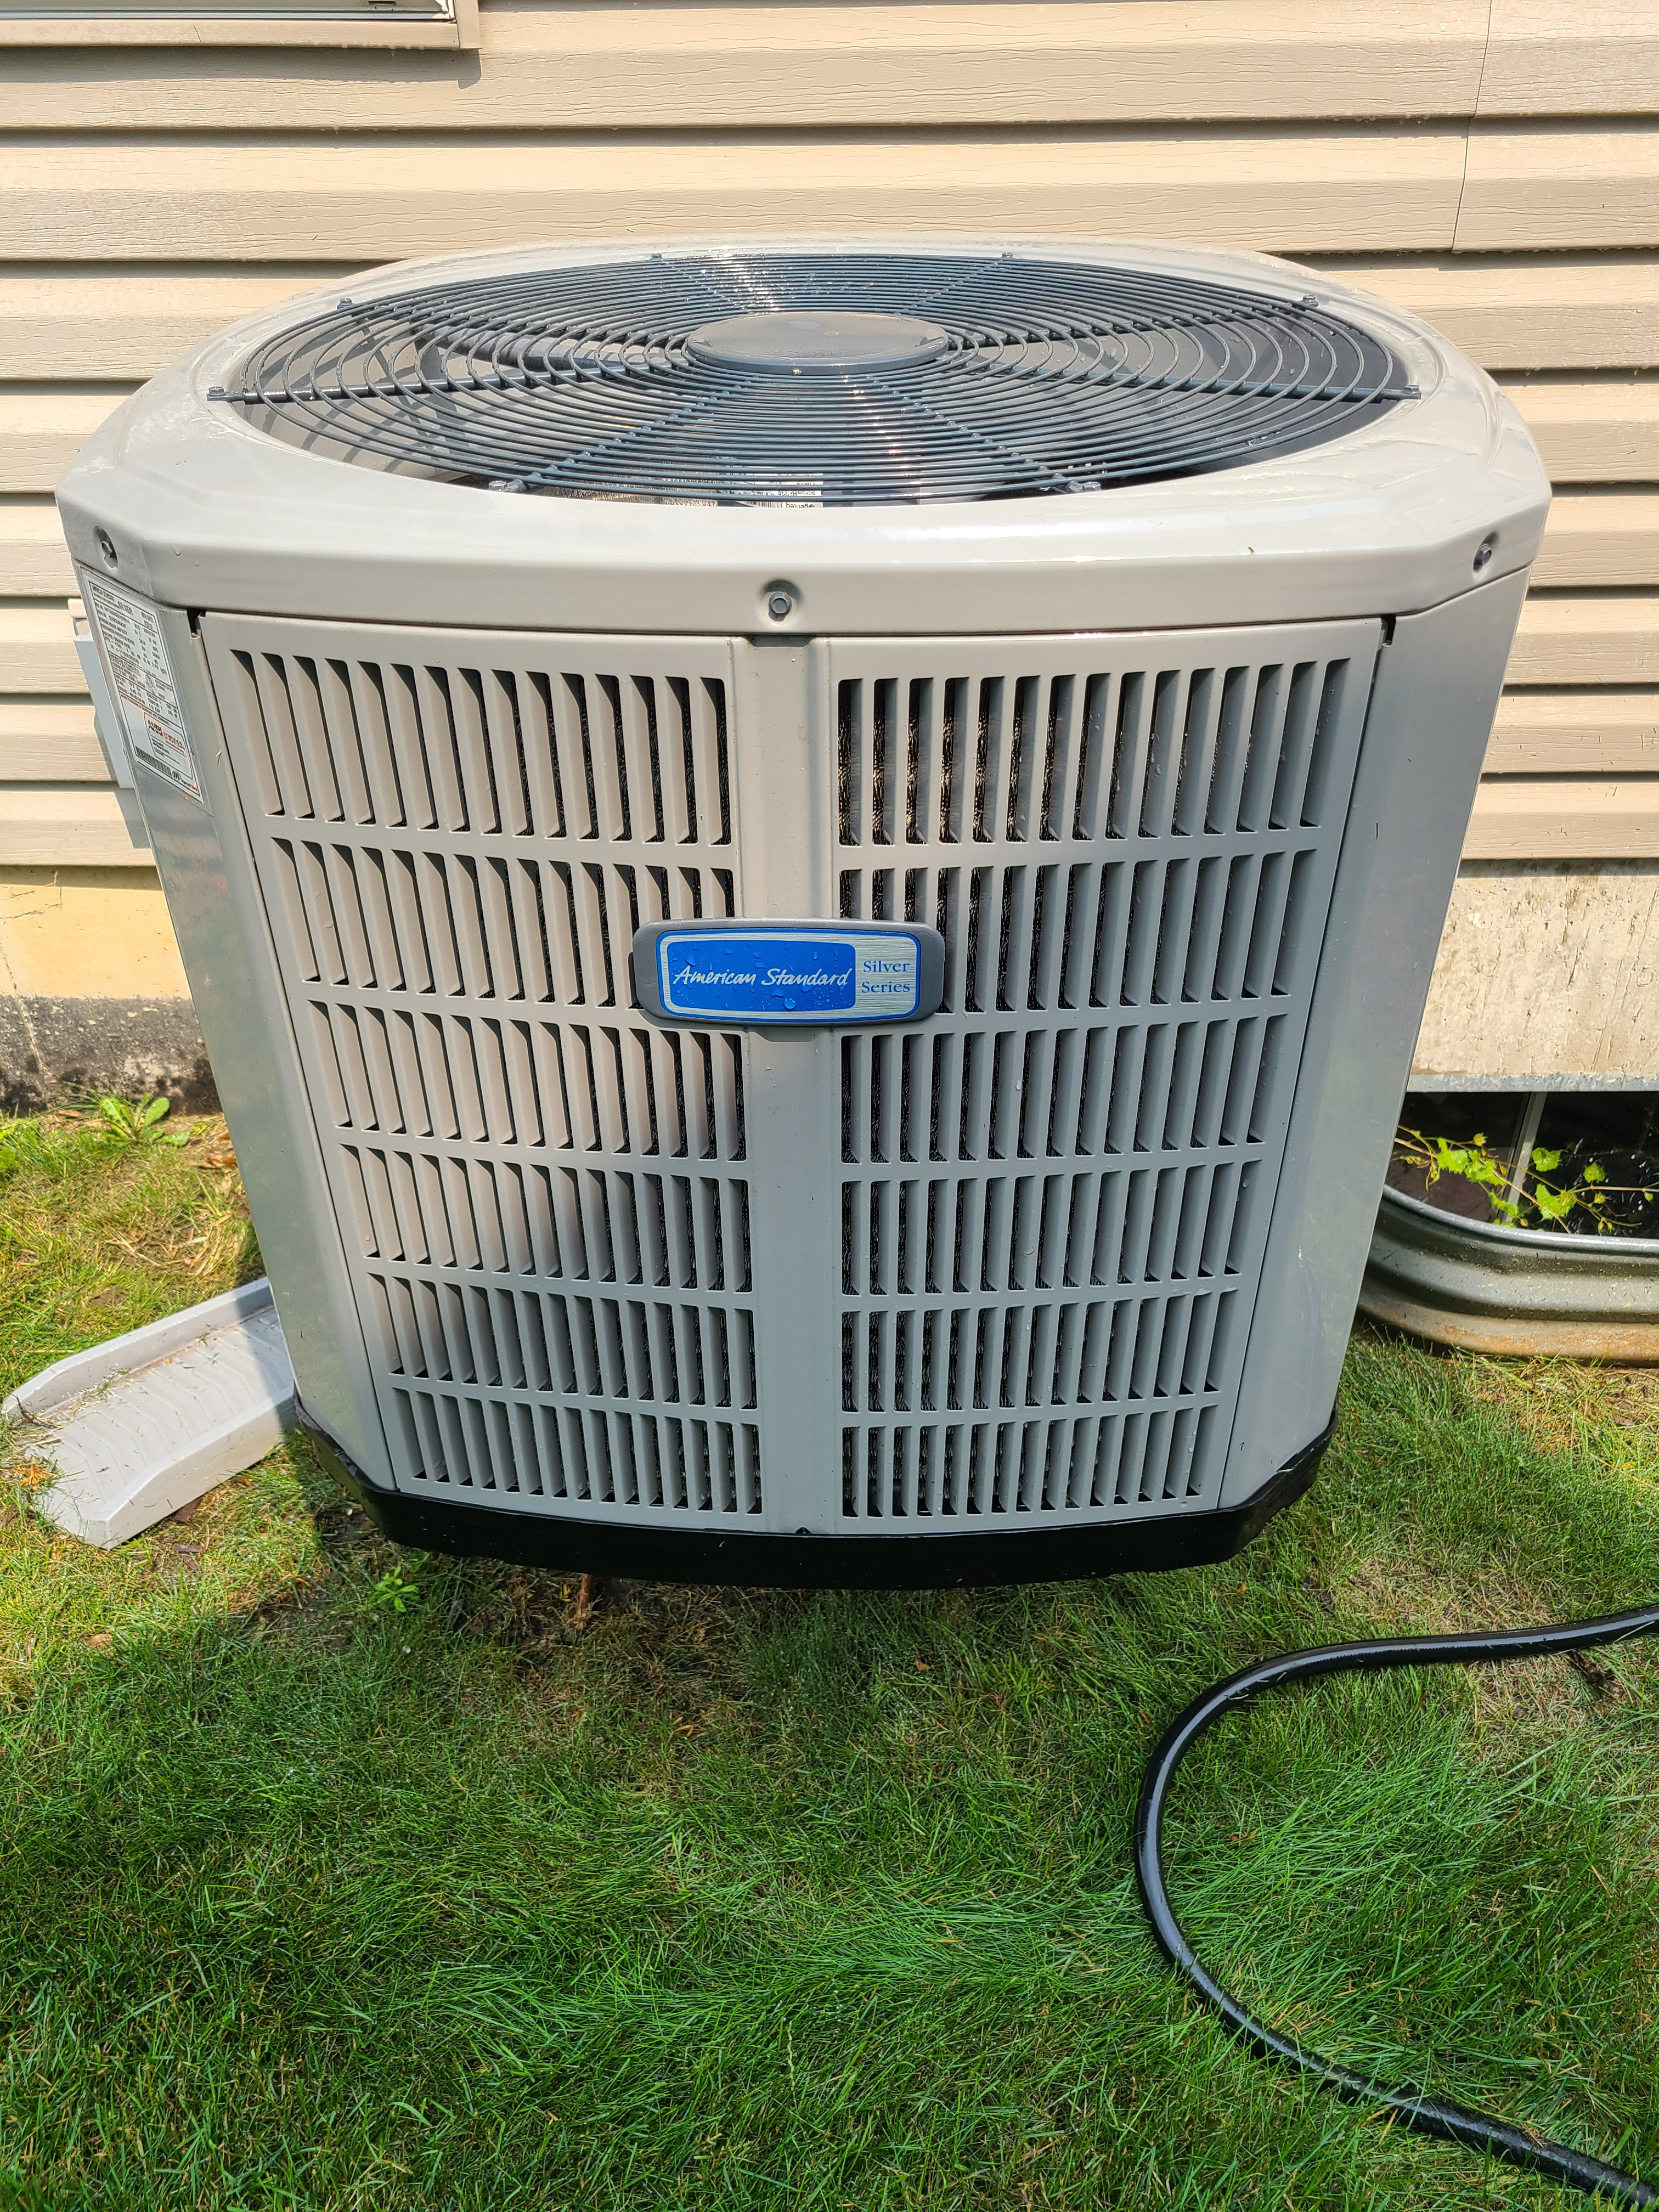 Overcharged American Standard air conditioner. Removed and unit is drawing 2 amps less.